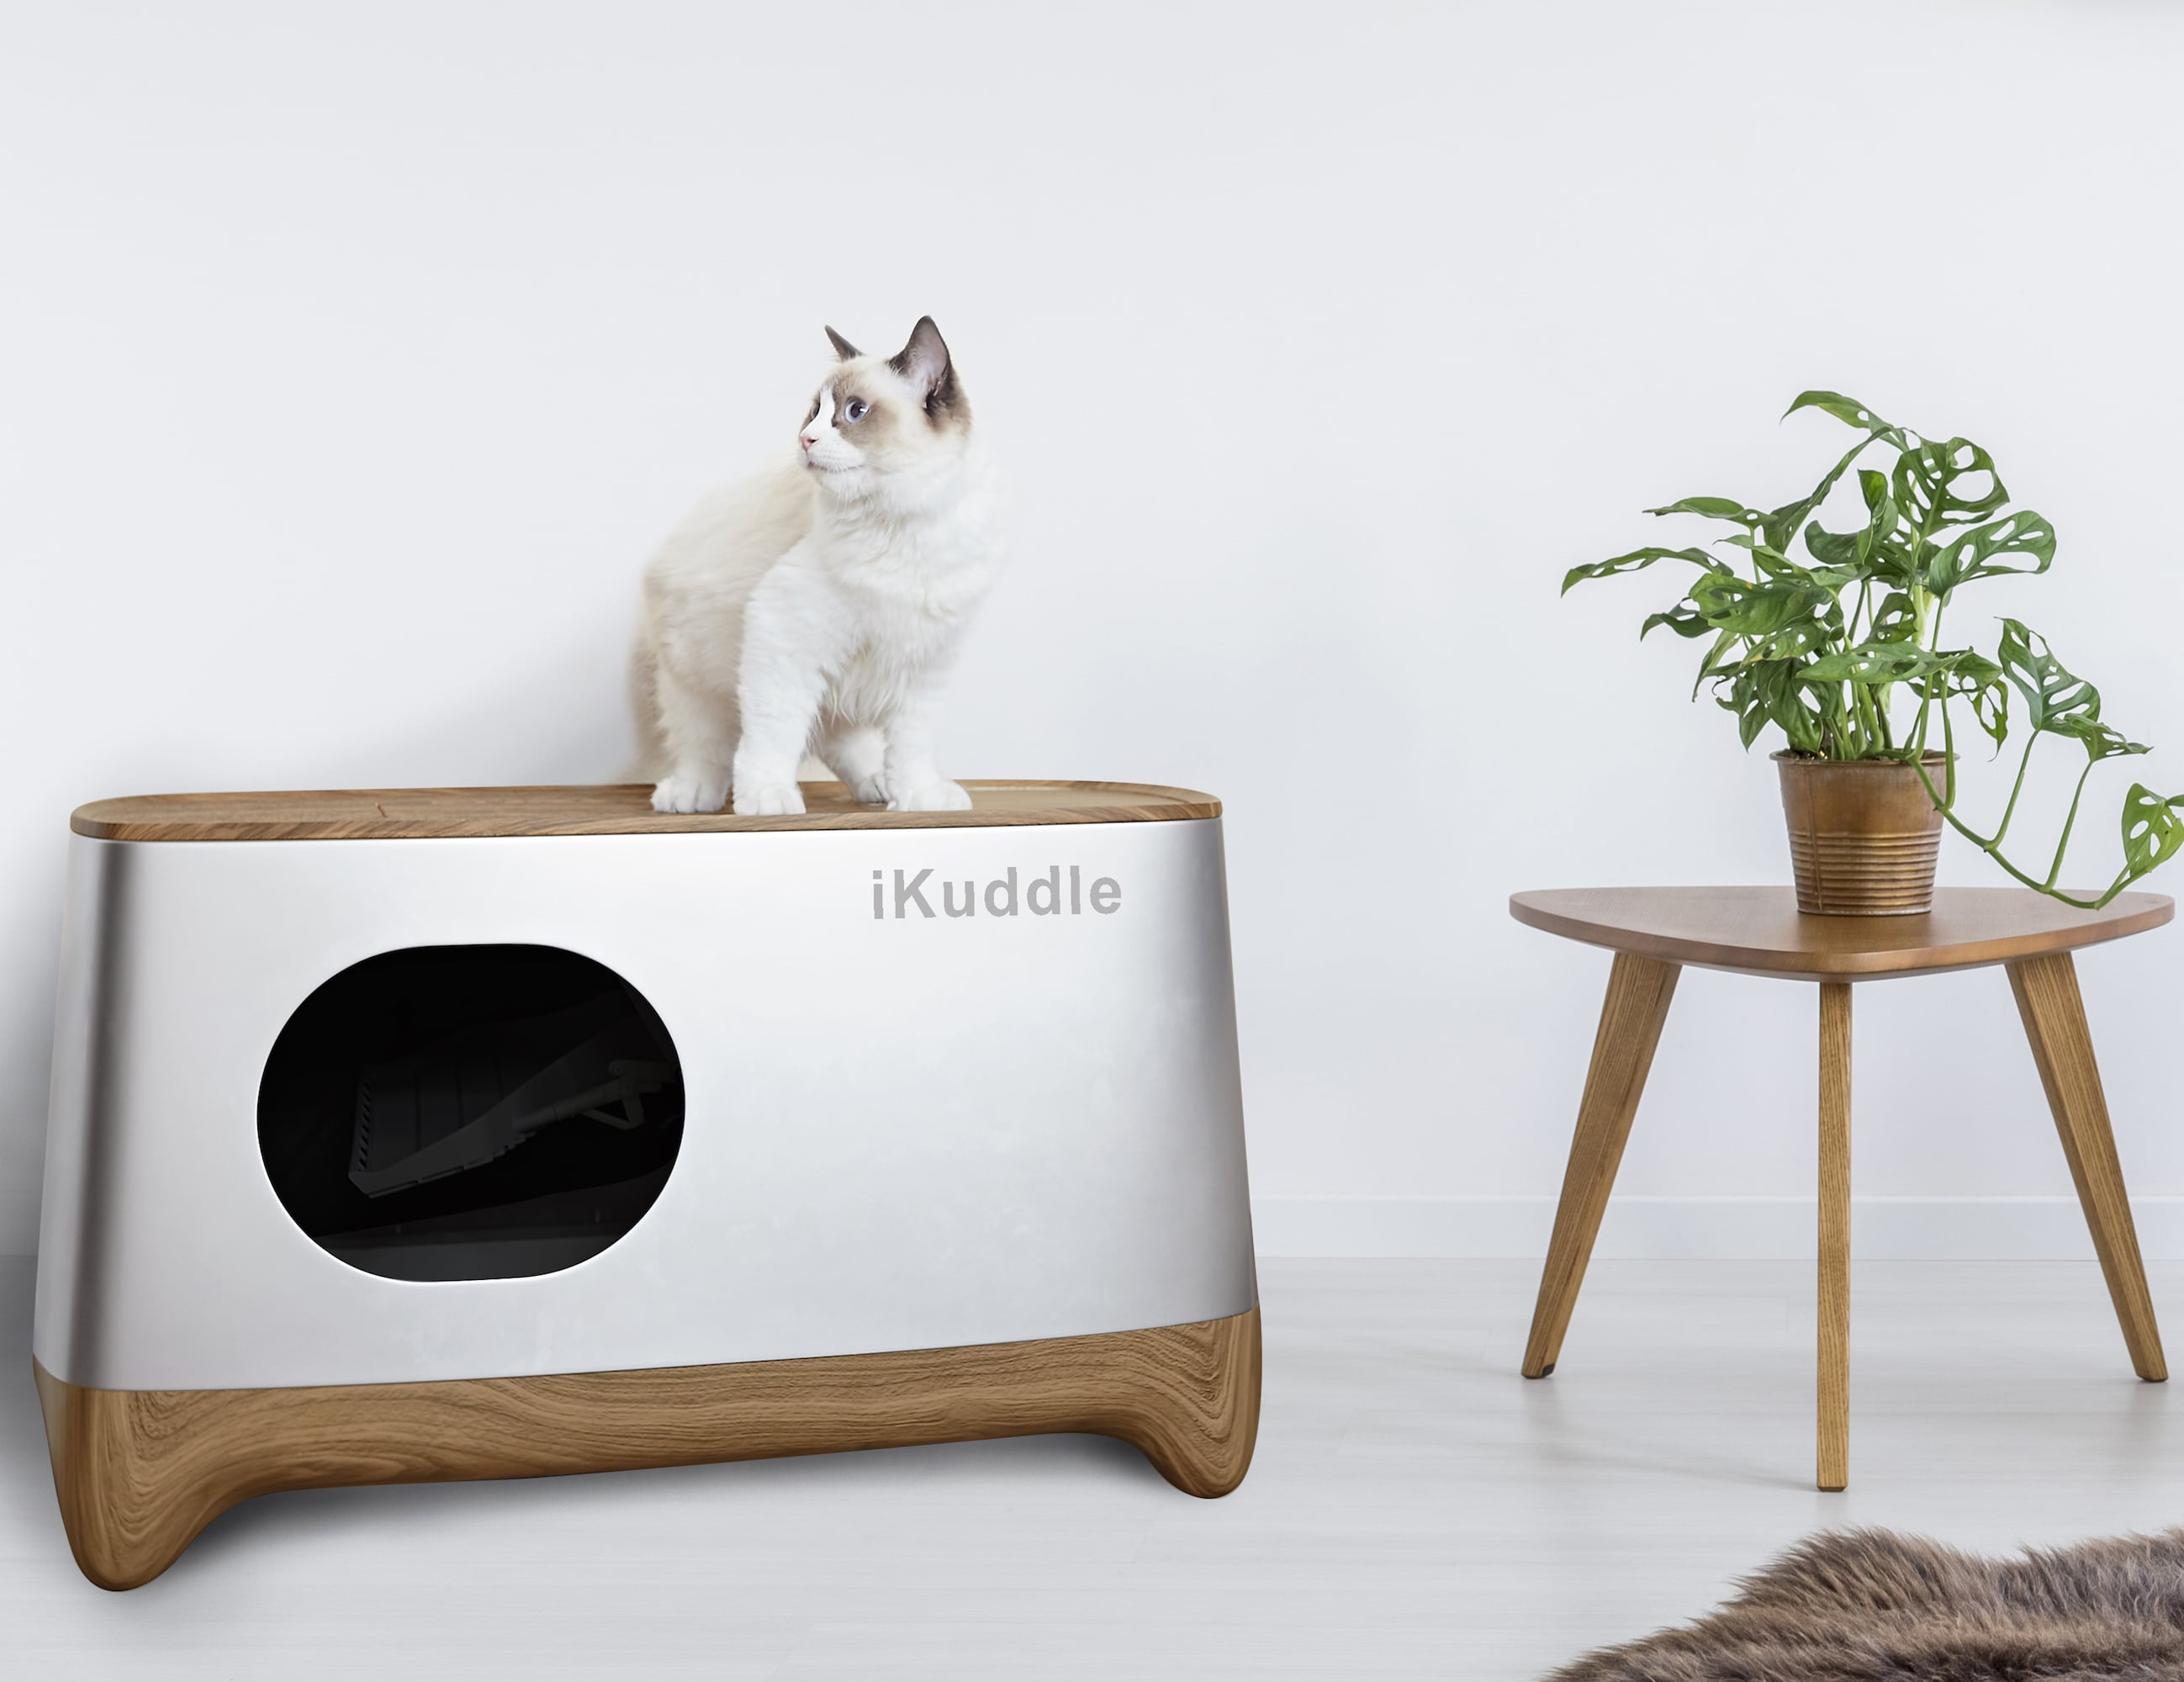 iKuddle Auto-Packing Litter Box actually cleans itself